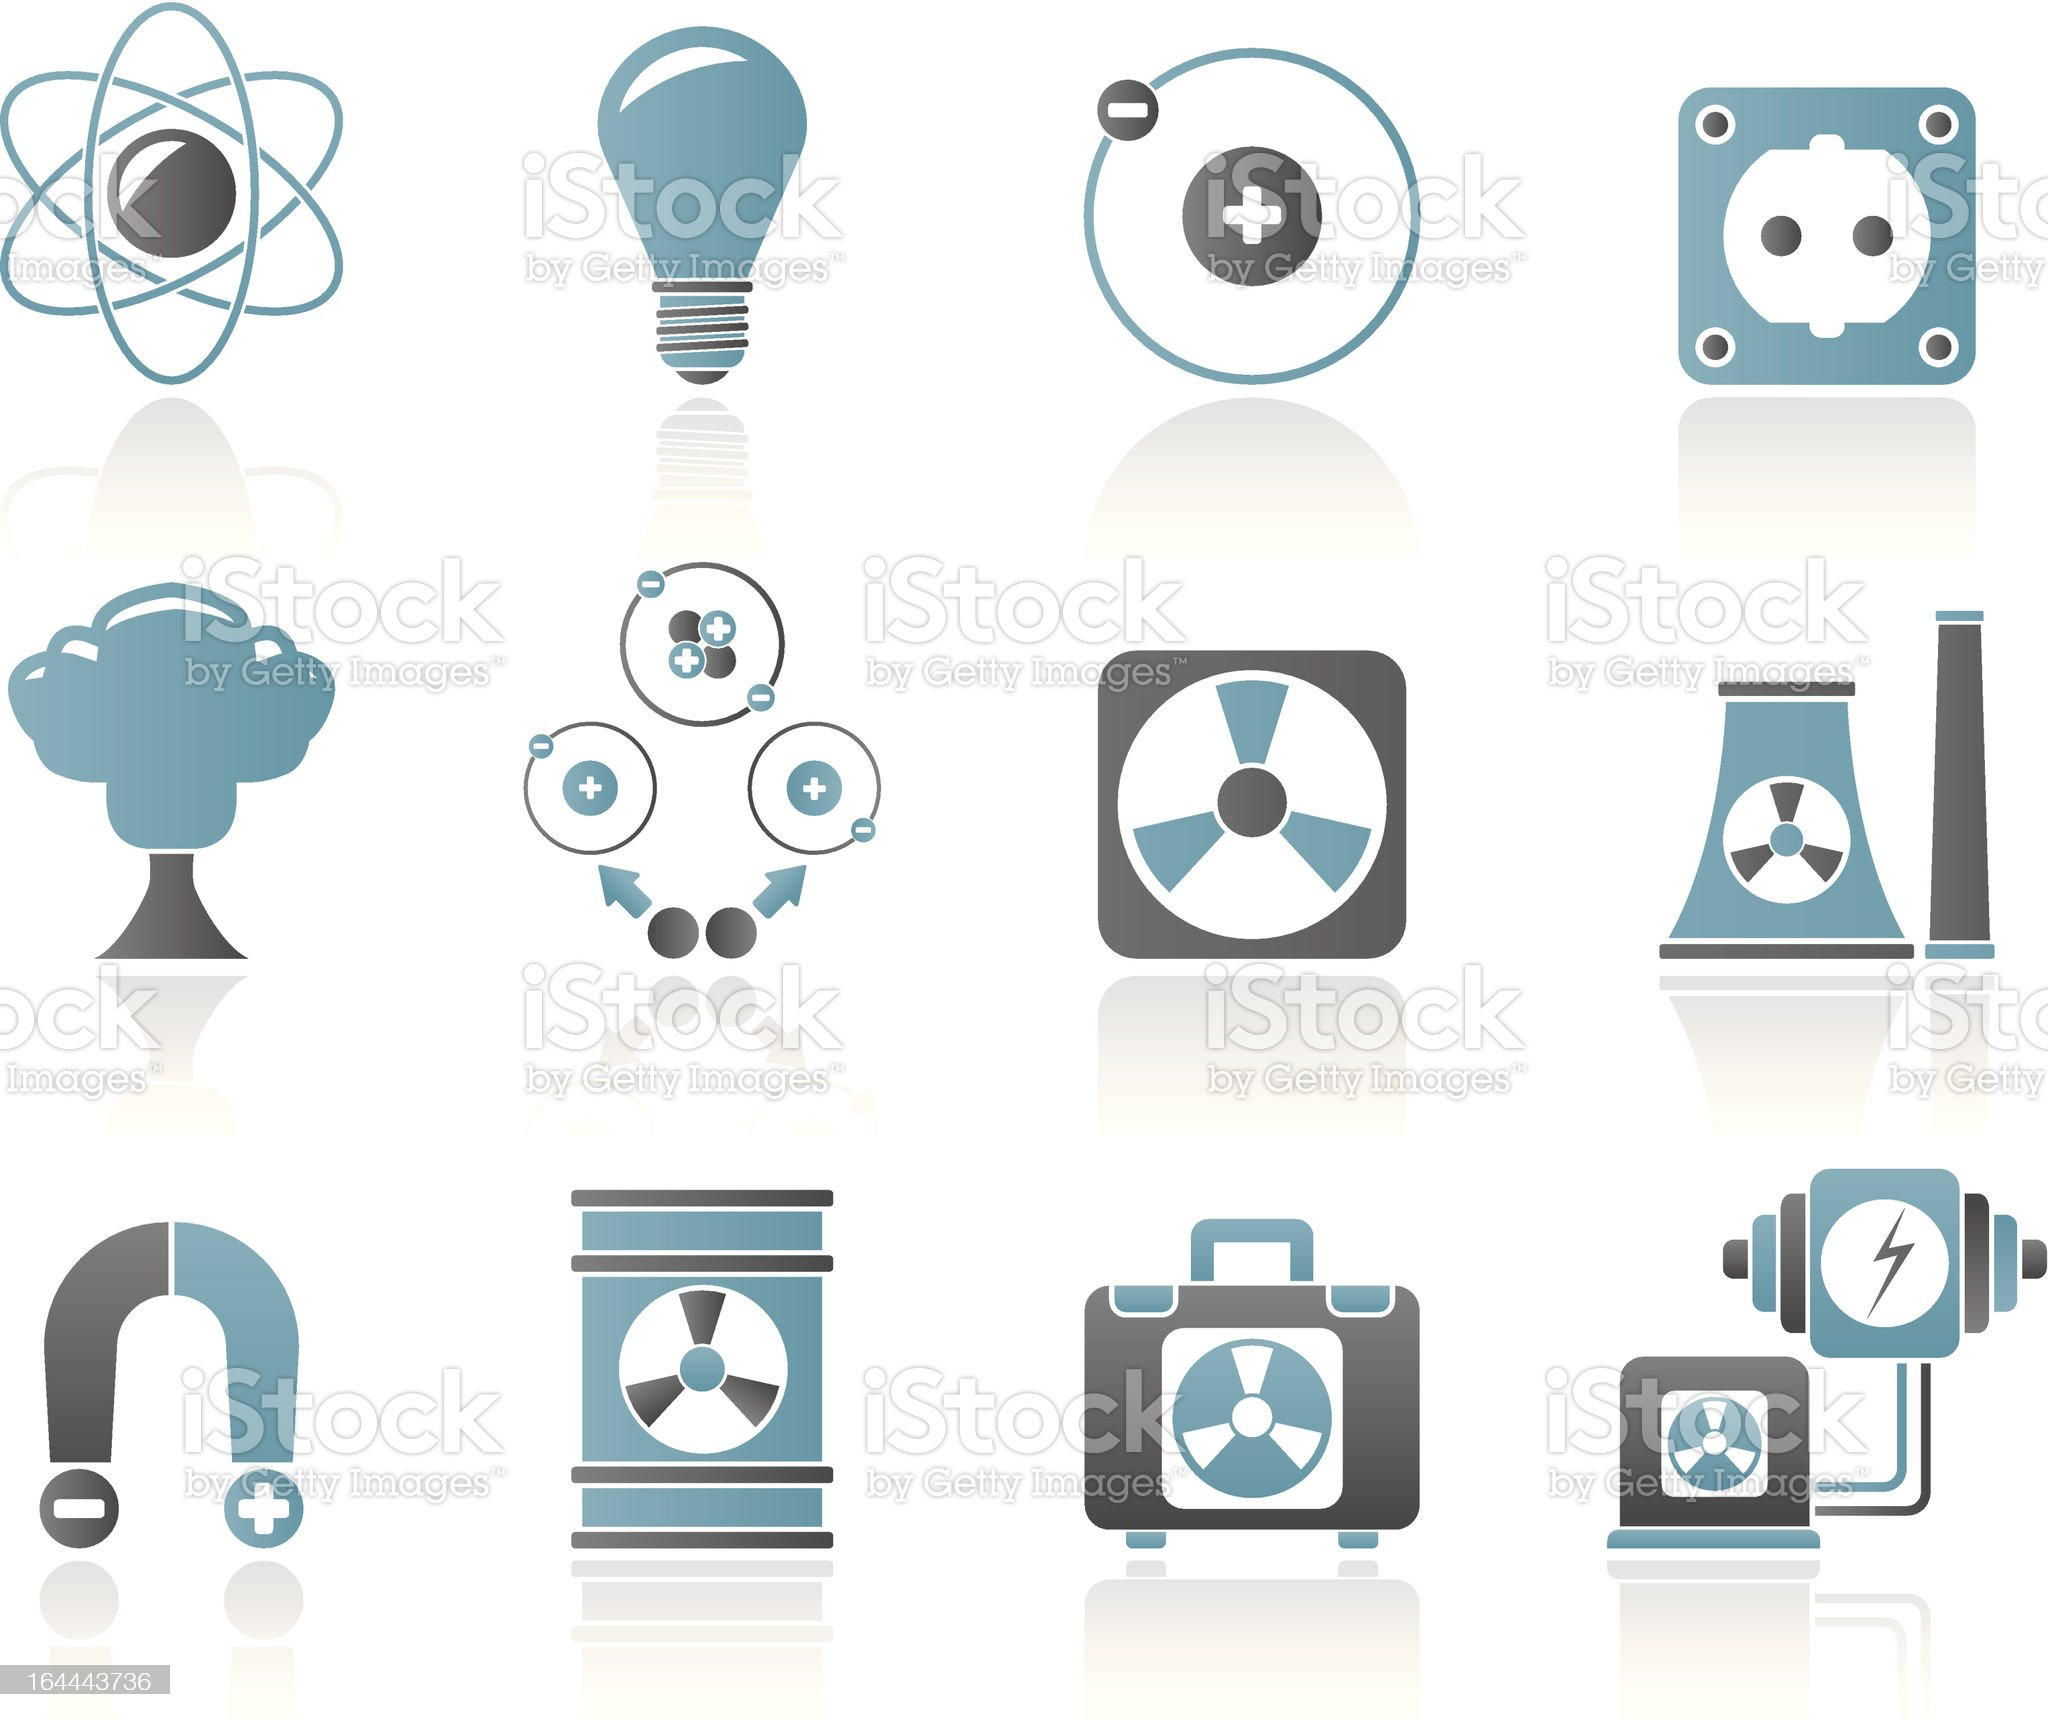 Atomic and Nuclear Energy Icons royalty-free stock vector art